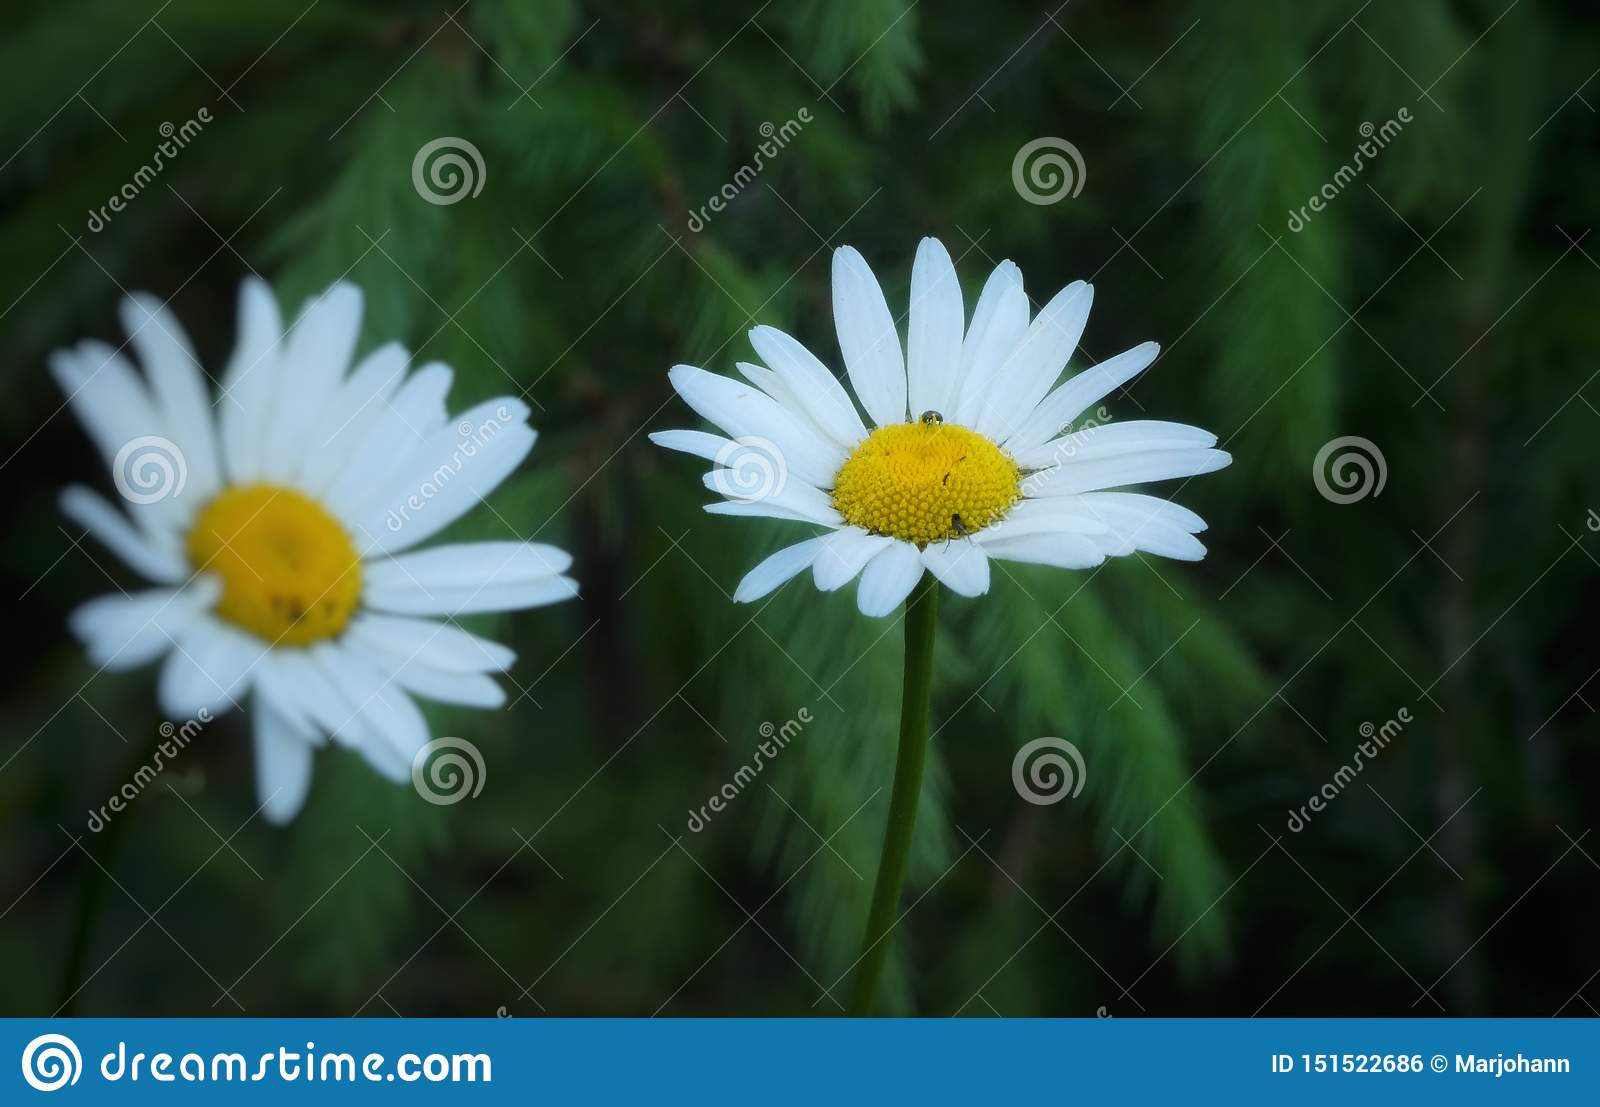 Daisies against tree